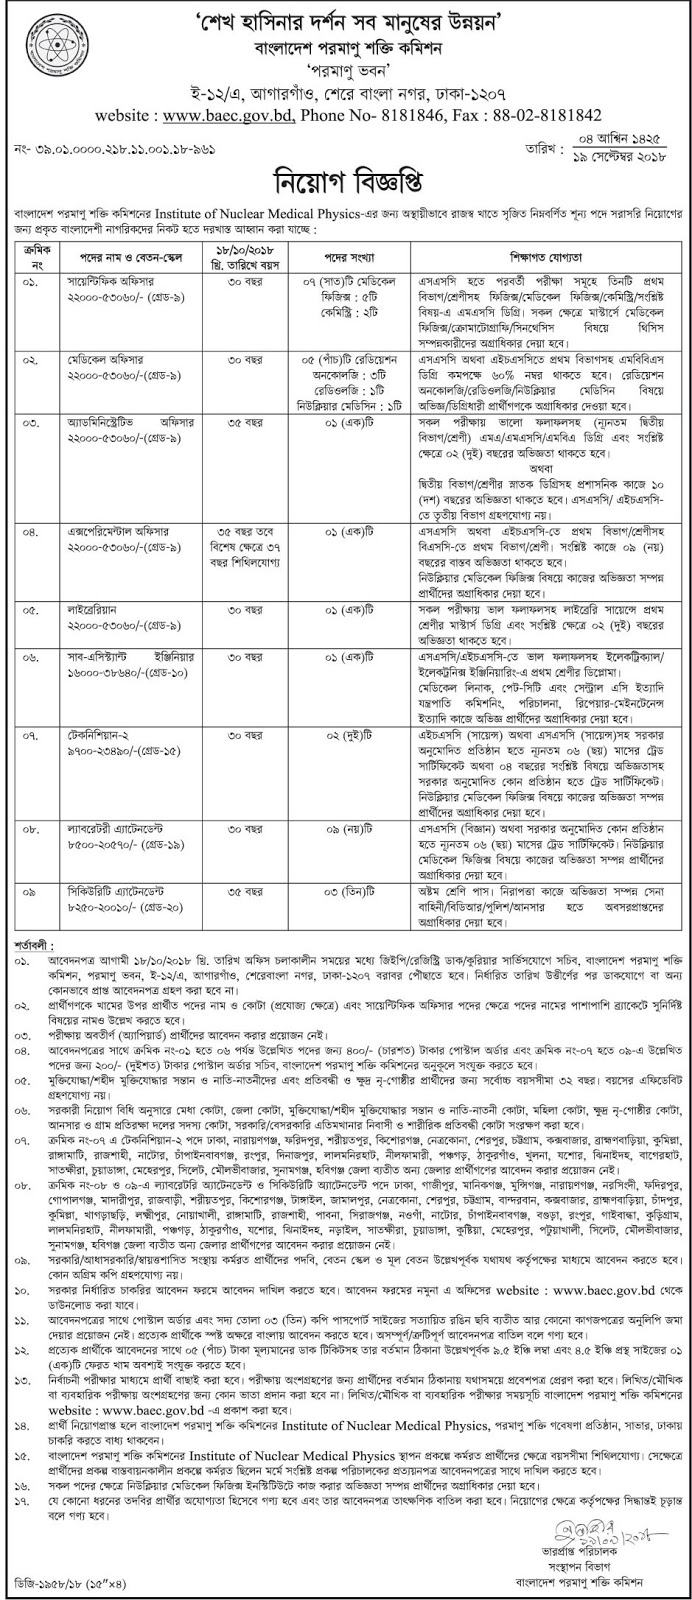 Bangladesh Atomic Energy Commission (BAEC) Job Circular 2018